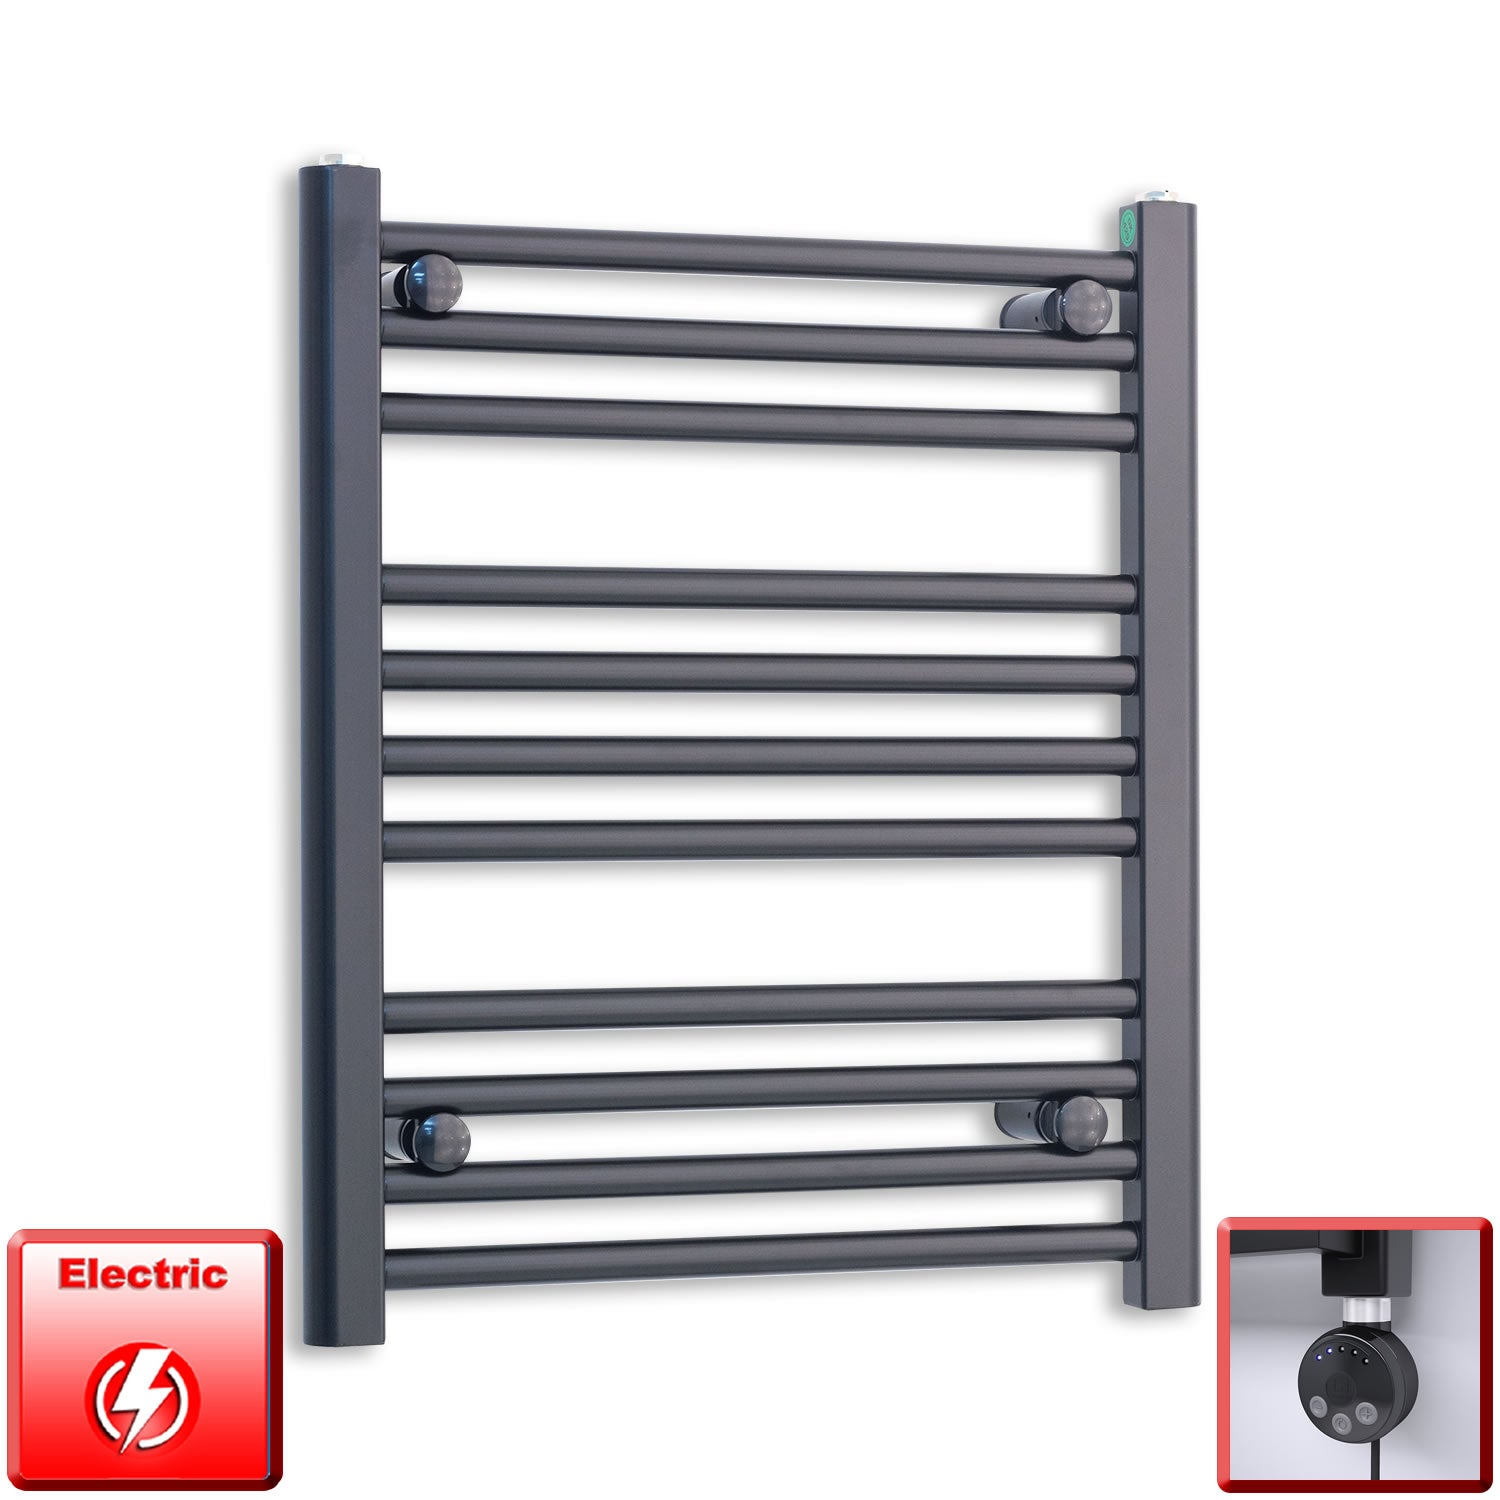 500mm Wide 600mm High Pre-Filled Black Electric Towel Rail Radiator With Thermostatic MEG Element